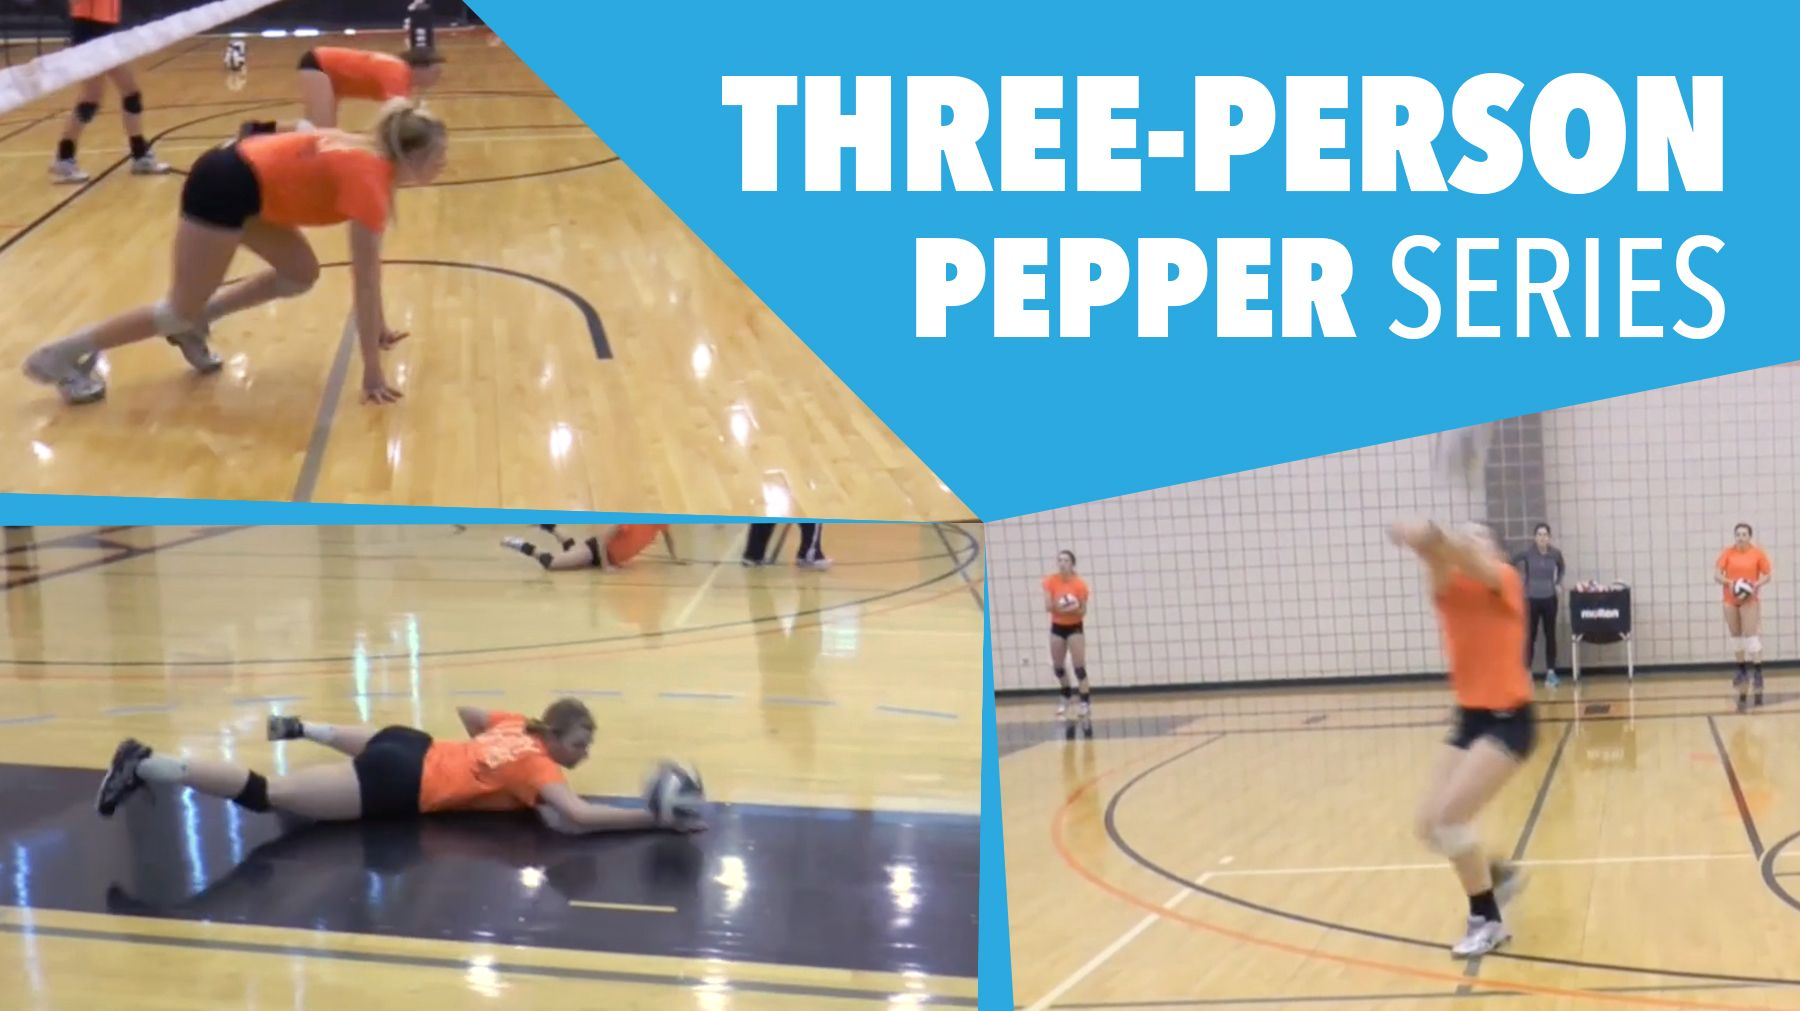 Three Person Pepper Series The Art Of Coaching Volleyball Coaching Volleyball Volleyball Person